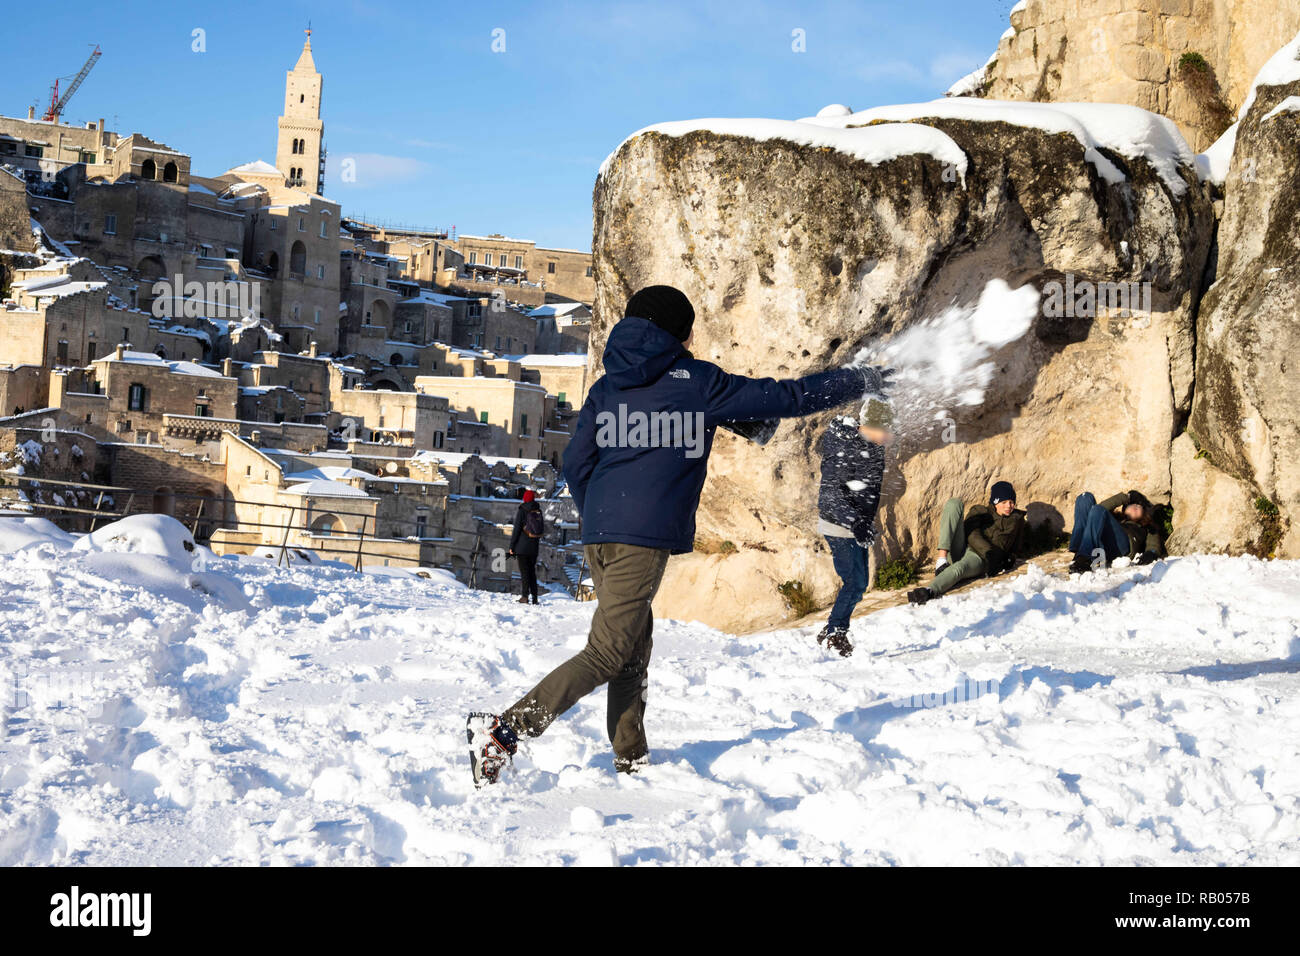 Matera, MT, Italy. 4th Jan, 2019. Children seen playing with snowballs, while tourists are sunbathing among the i Sassi di Matera after a long snowfall when the sun shines on the snow-covered rocks of matera, making a beautiful postcard of the European capital of culture 2019. Credit: Cosimo Martemucci/SOPA Images/ZUMA Wire/Alamy Live News Credit: ZUMA Press, Inc./Alamy Live News - Stock Image